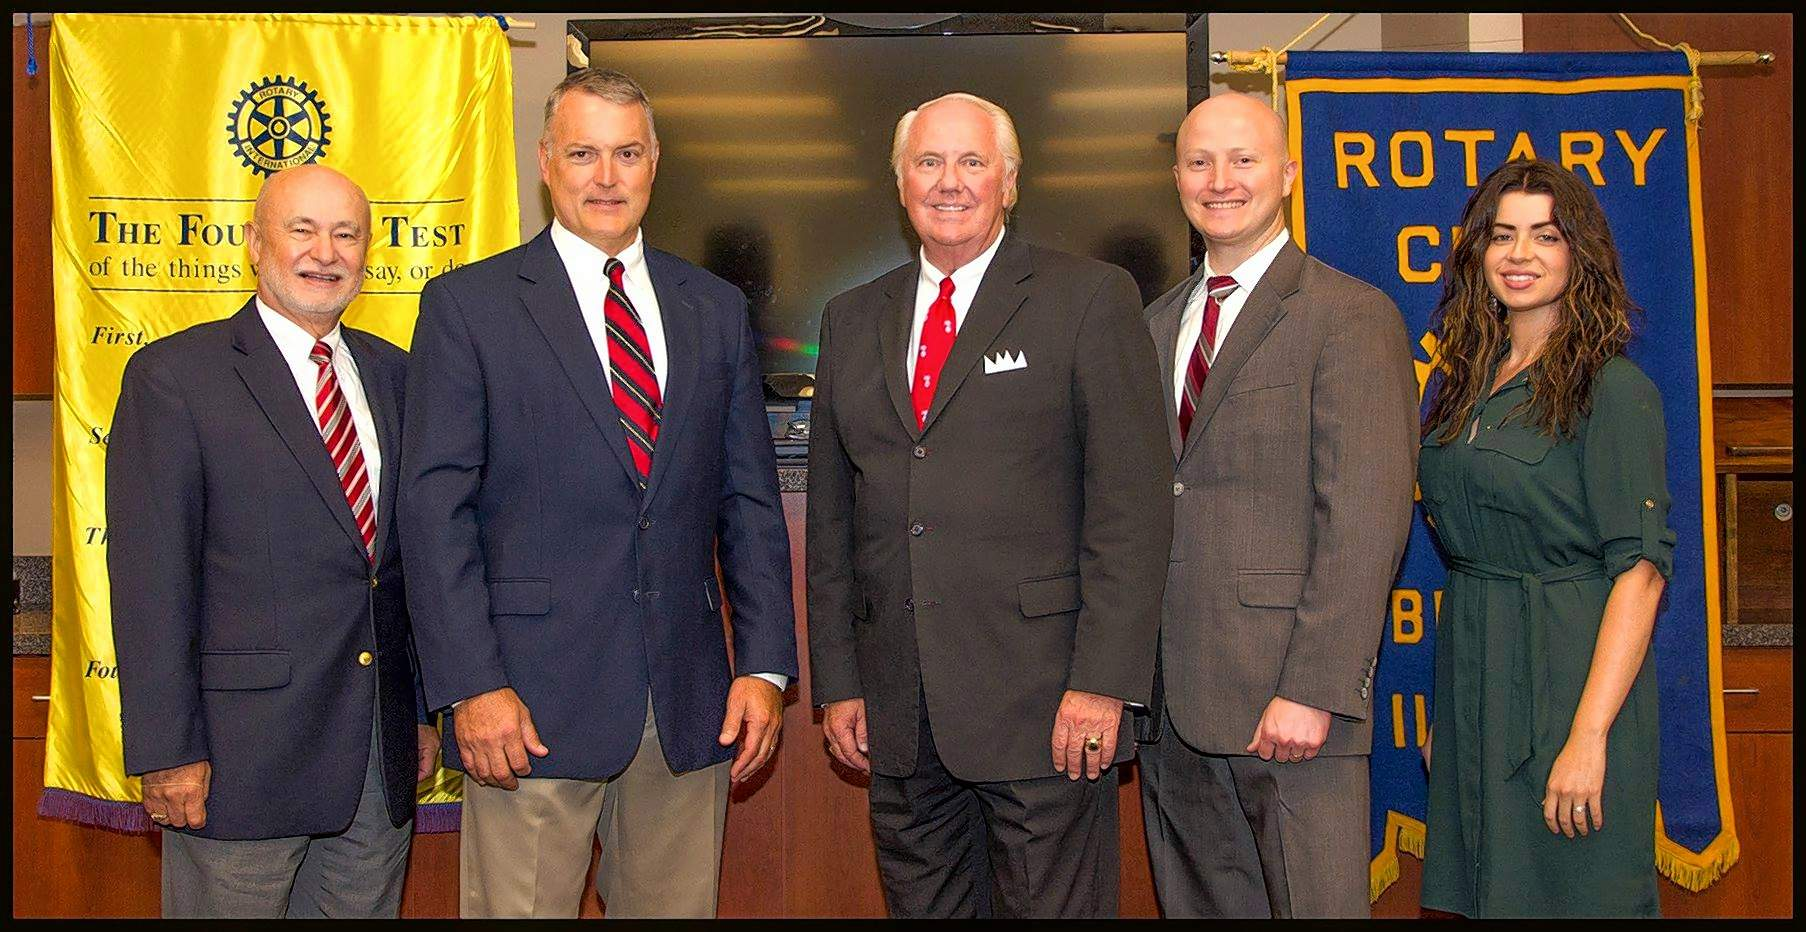 The Benton Rotary Club recently had a changing of the guard with new officers for the 2018-19 fiscal year. From left to right are John D. Aiken, secretary; Derek Johnson, vice president; Ken Burzynski, president; Jonathan Cantrell, sergeant at arms; and Hillary Remm, treasurer. Not shown is Steve Pate, past president. The Benton RotaryClub meets at noon every Tuesday in the Franklin Hospital Conference Room. Members enjoy a hot meal and take turns bringing in a guest speaker. For more information, follow theBenton Rotary Club on Facebook.